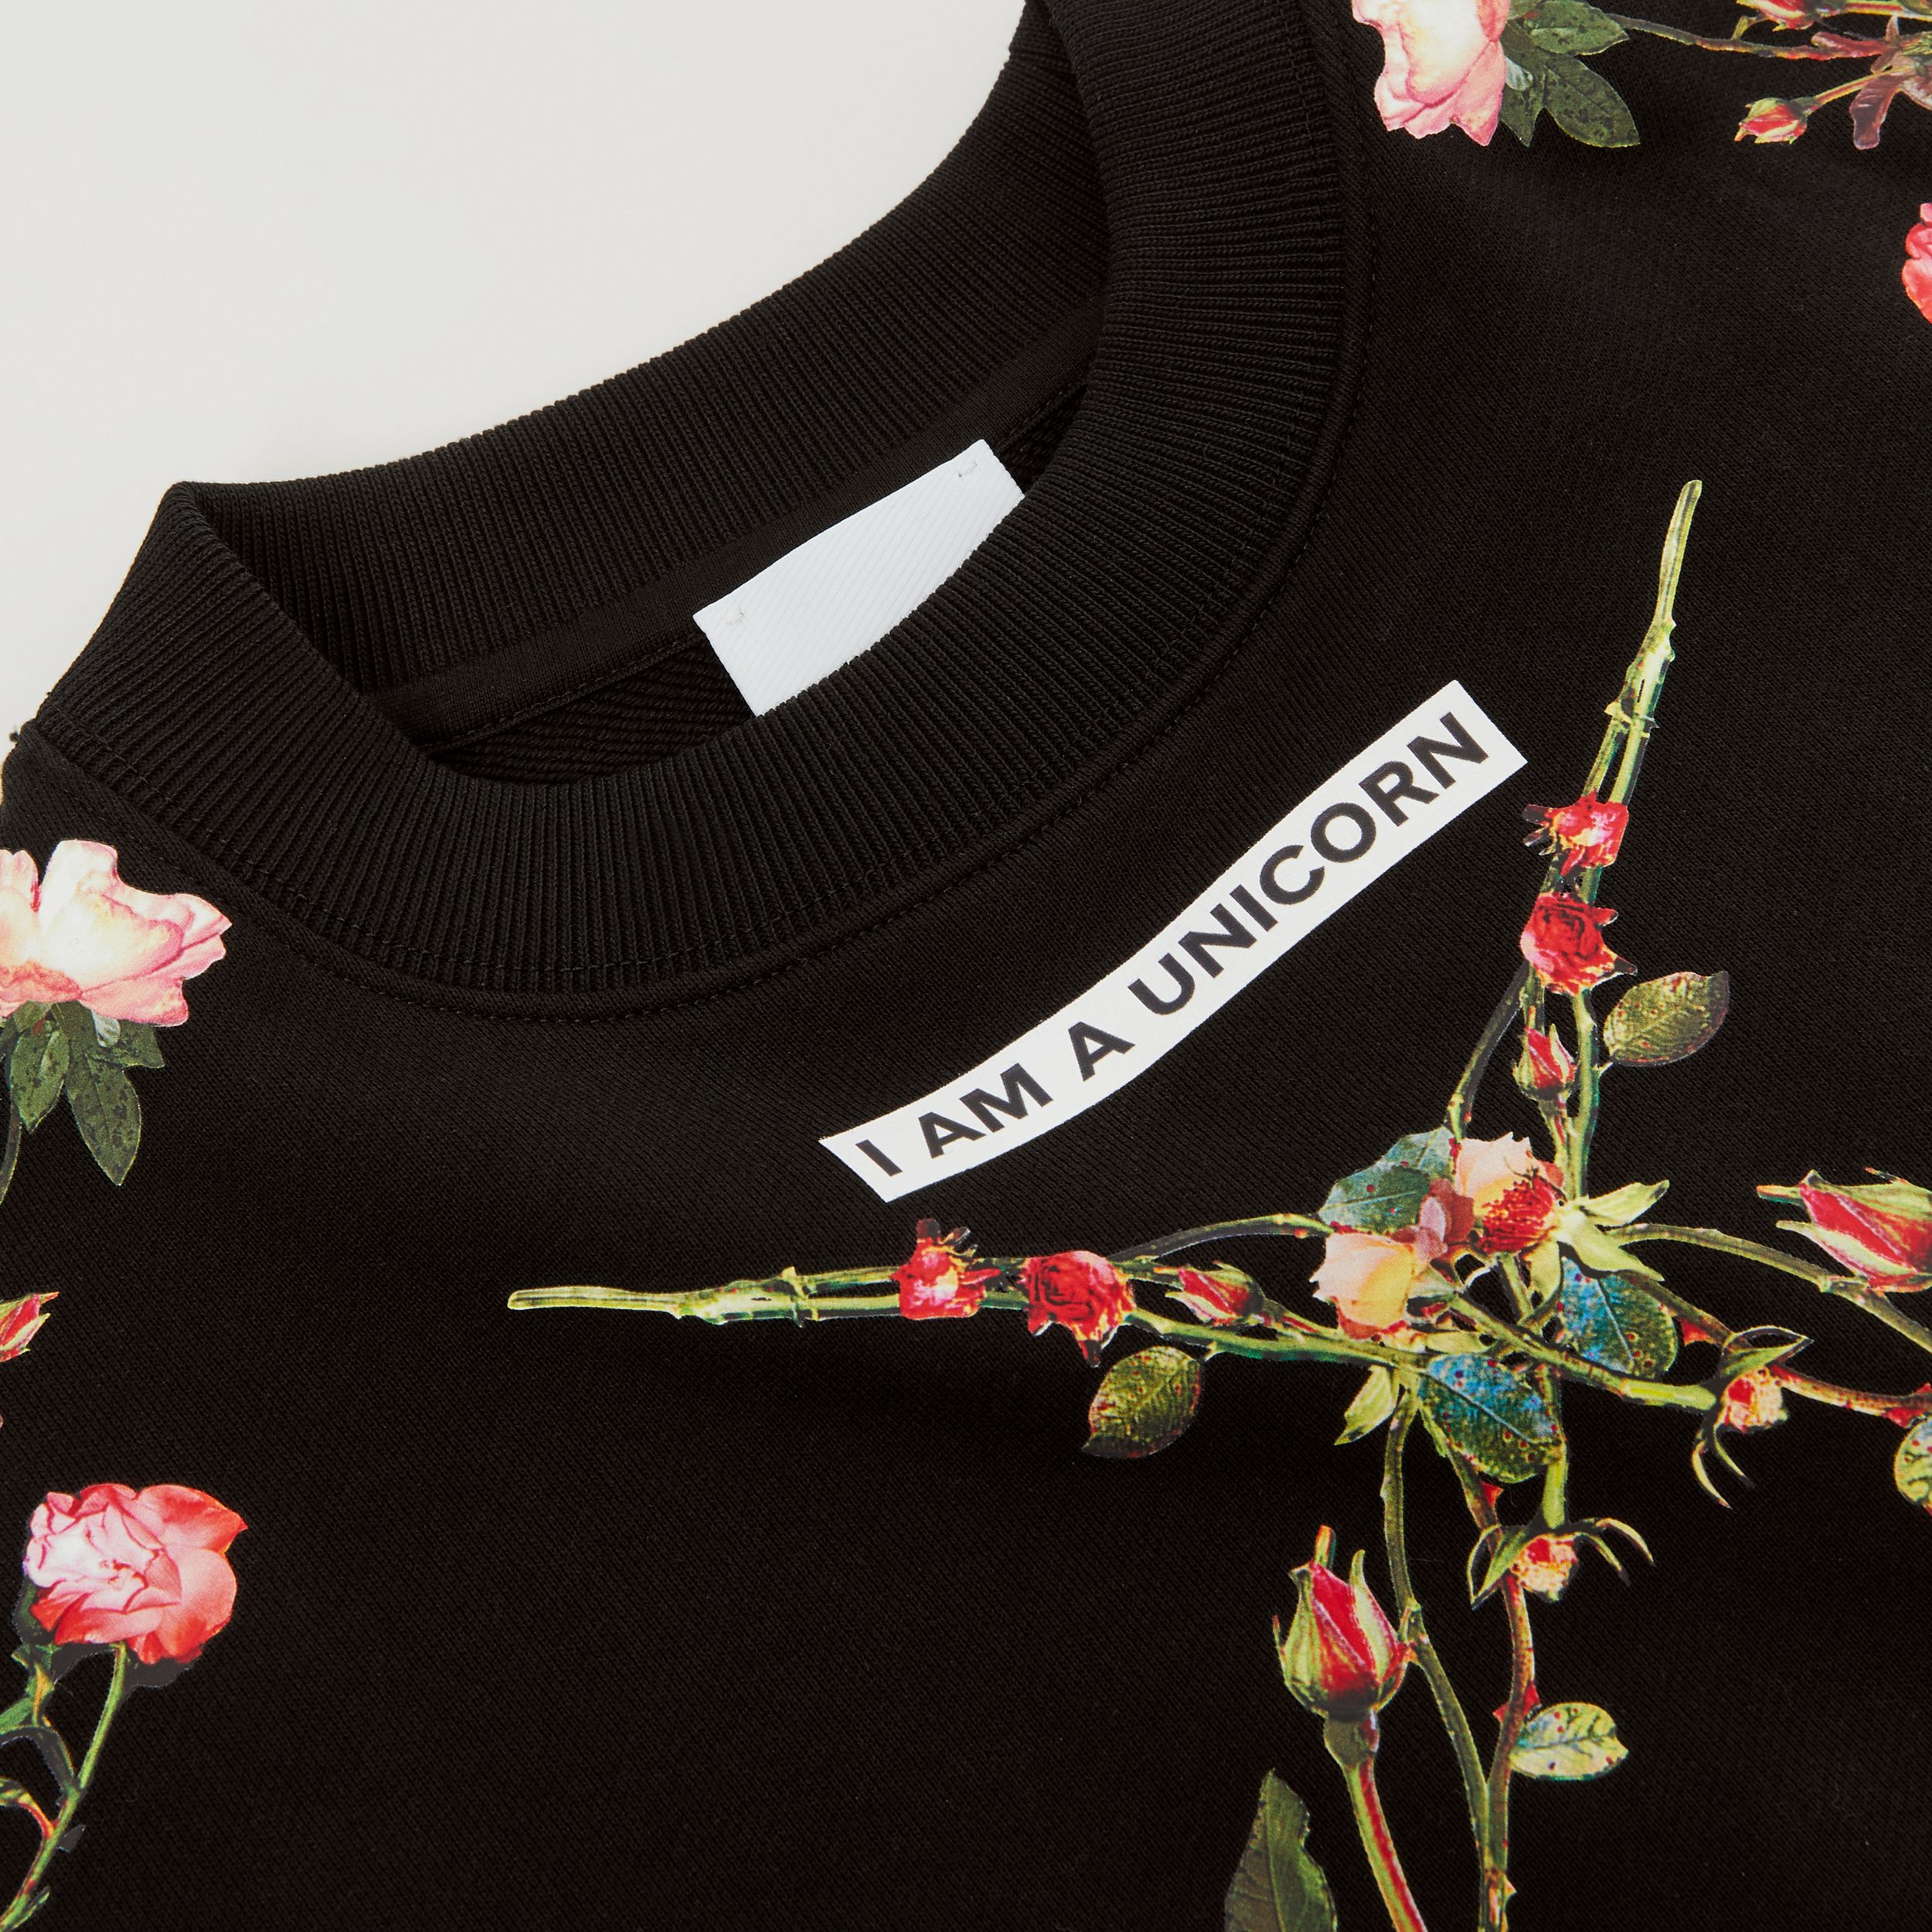 Montage Print Cotton Sweatshirt in Black | Burberry - 2